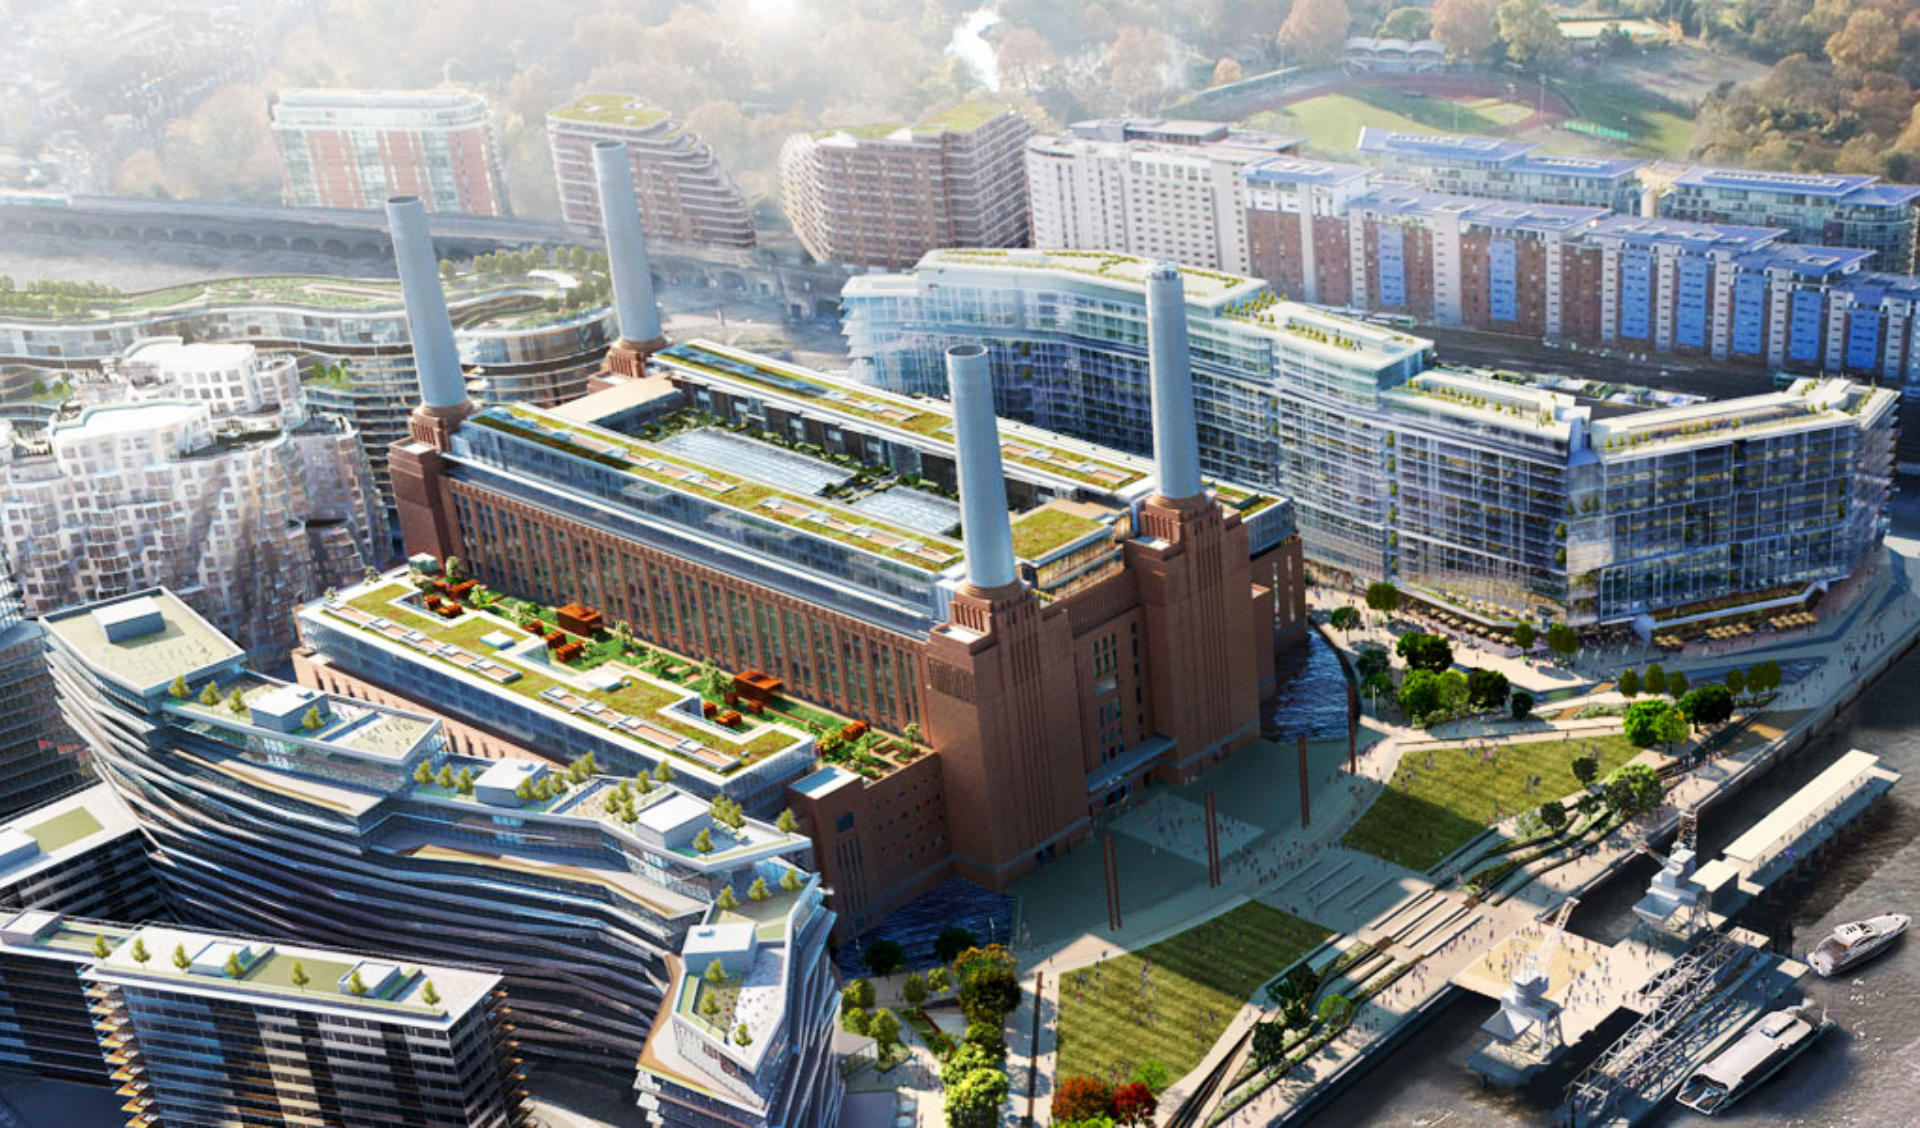 BATTERSEA POWER STATION - Expected Completion 2025 (United Kingdom)